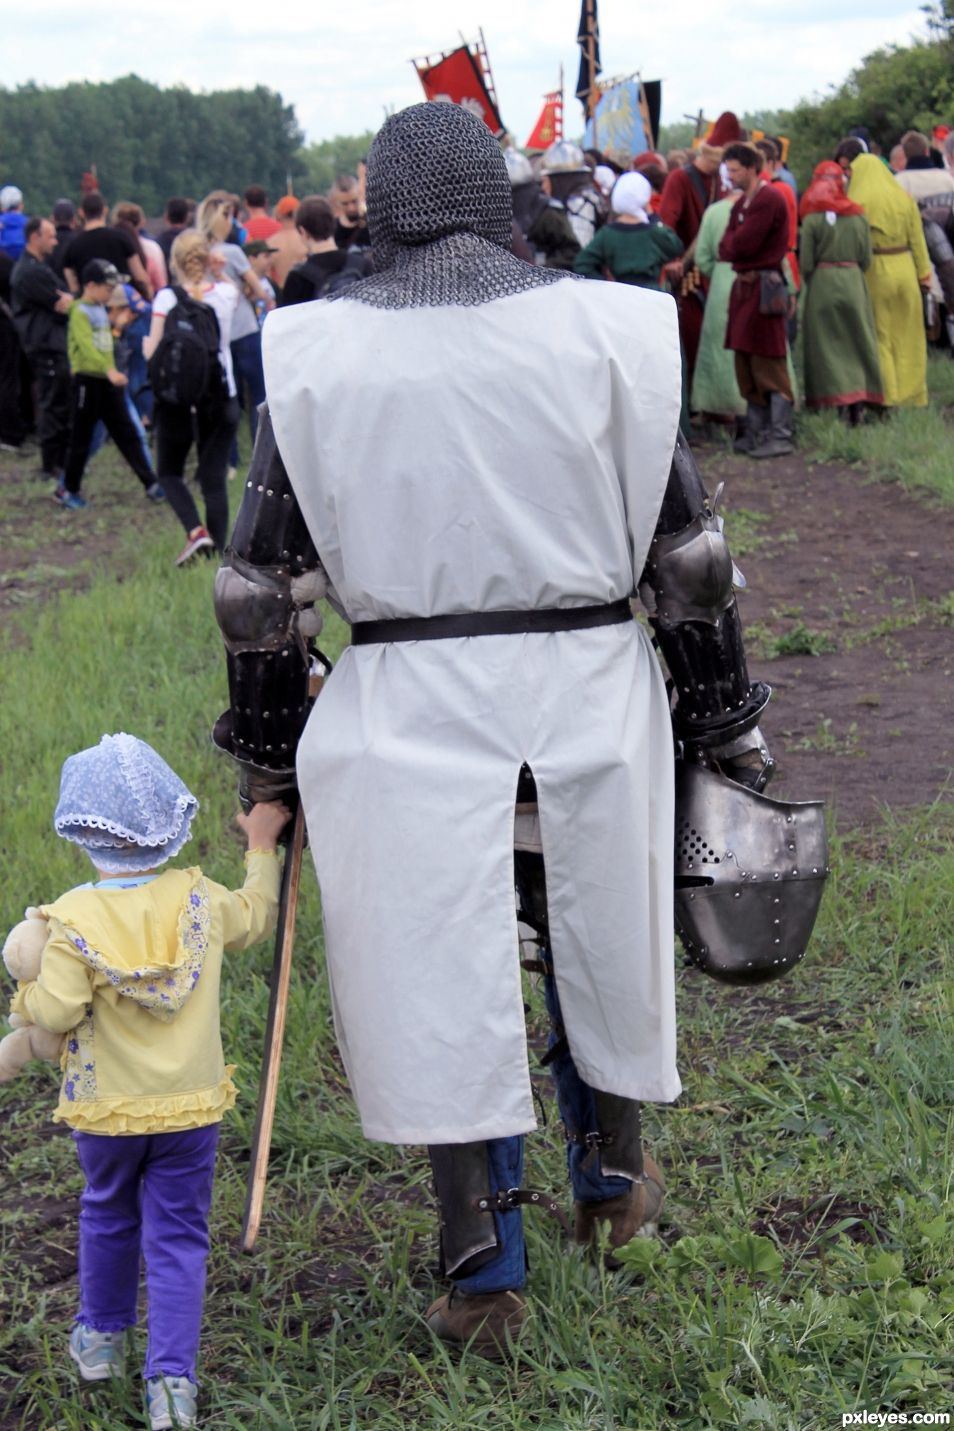 A Knight and a Kid